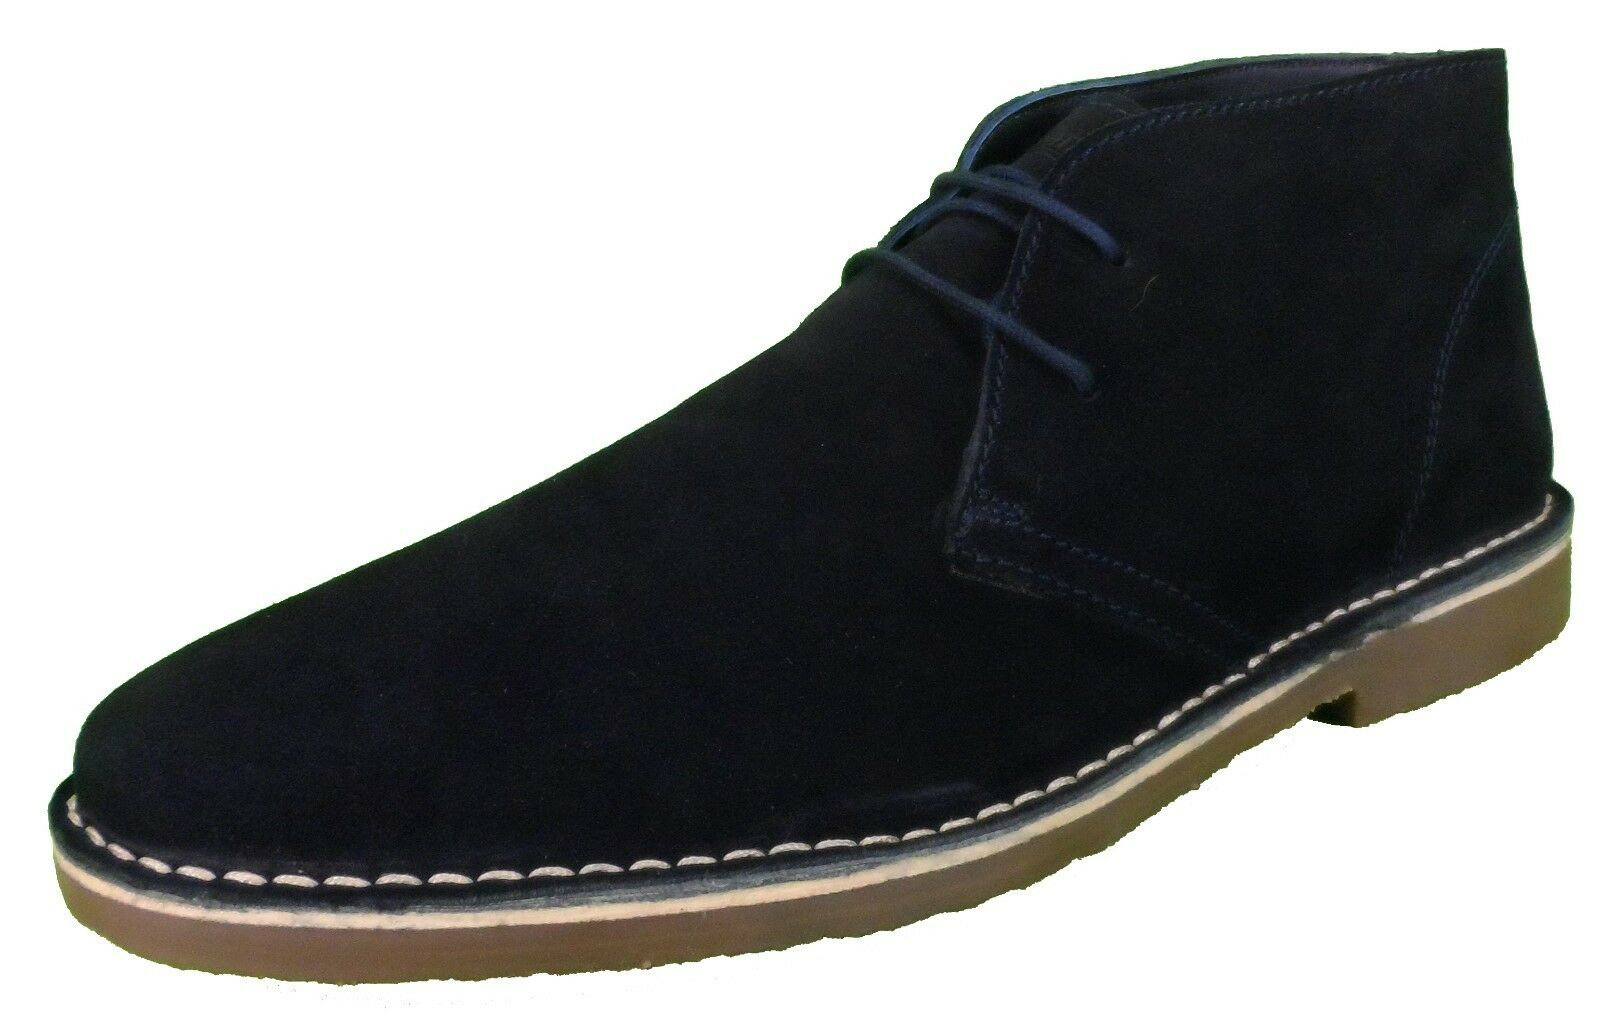 Roamers Navy 2 Eyelet Sharp Toe Retro MOD Style Real Suede Desert Boots